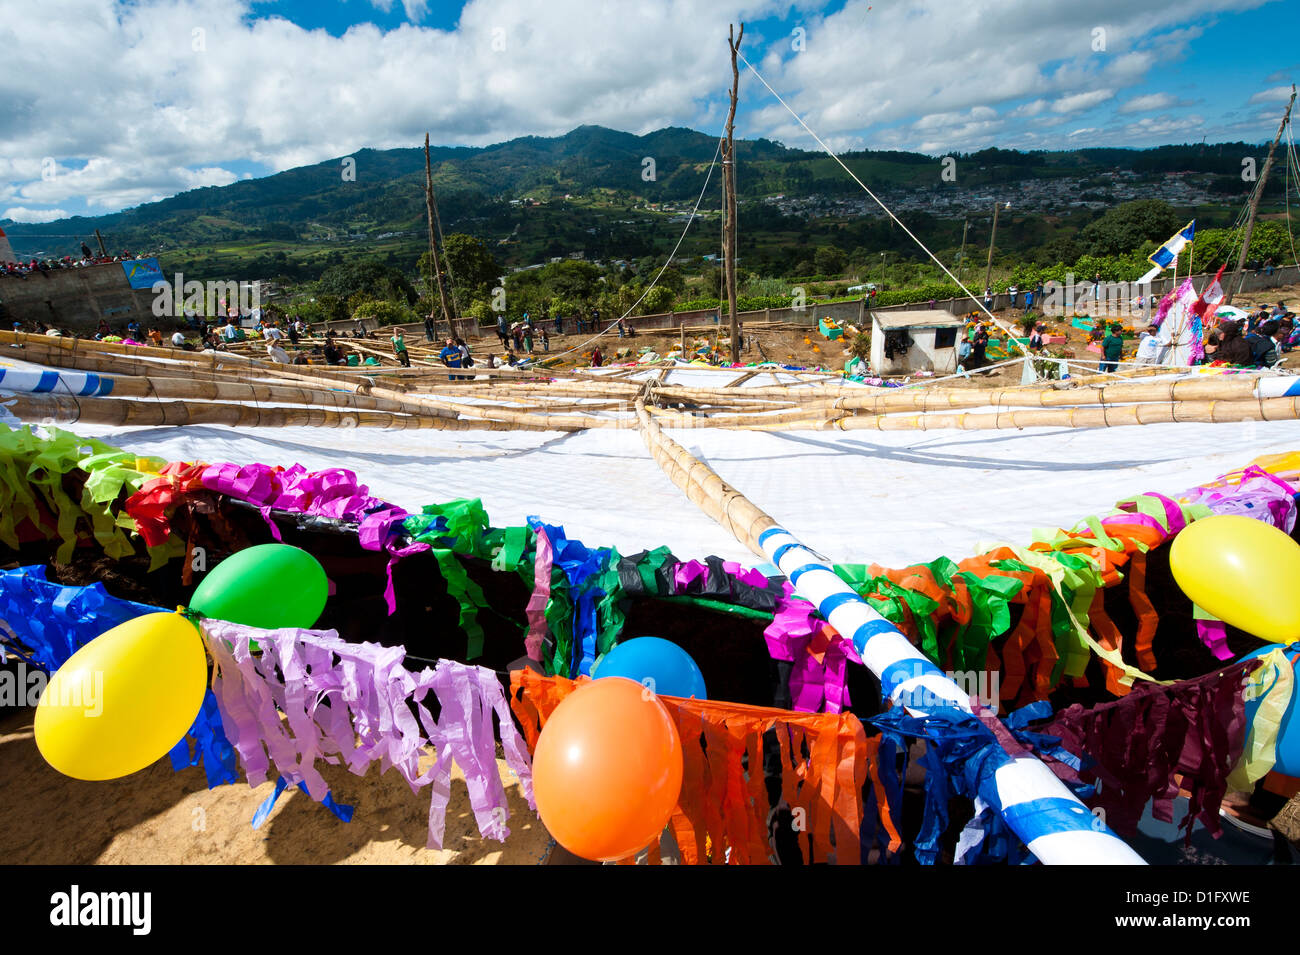 Day Of The Dead kites (barriletes) in cemetery in Santiago Sacatepequez, Guatemala, Central America - Stock Image